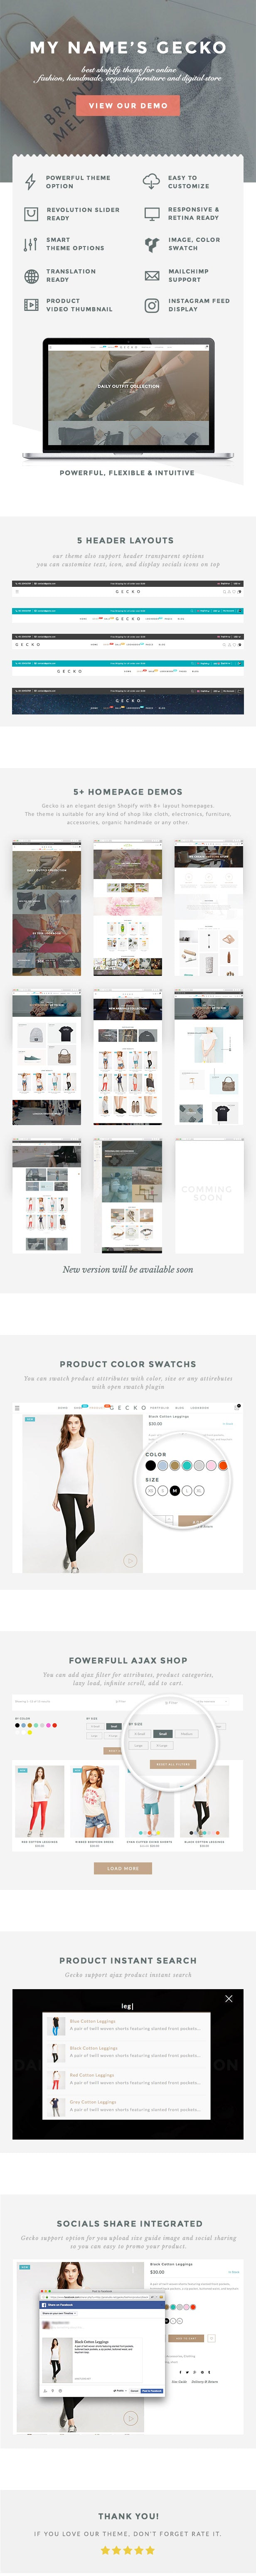 Gecko - Powerful Fashion, Organic Shopify Theme